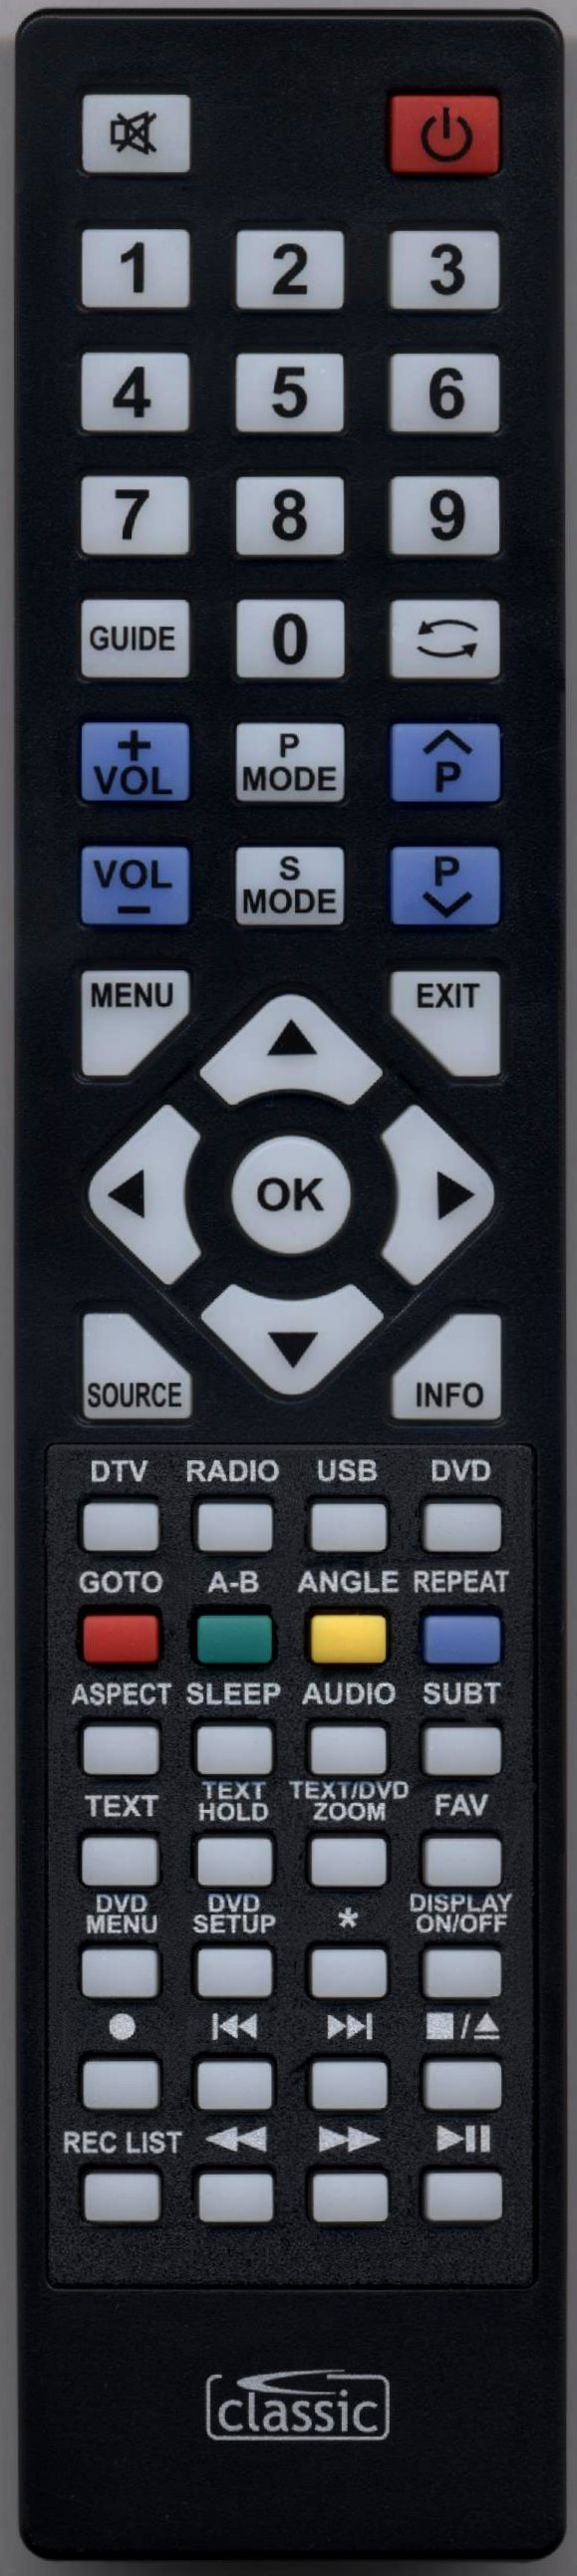 Blaupunkt 32/133O-WB-11B-EGP-UK Remote Control Alternative